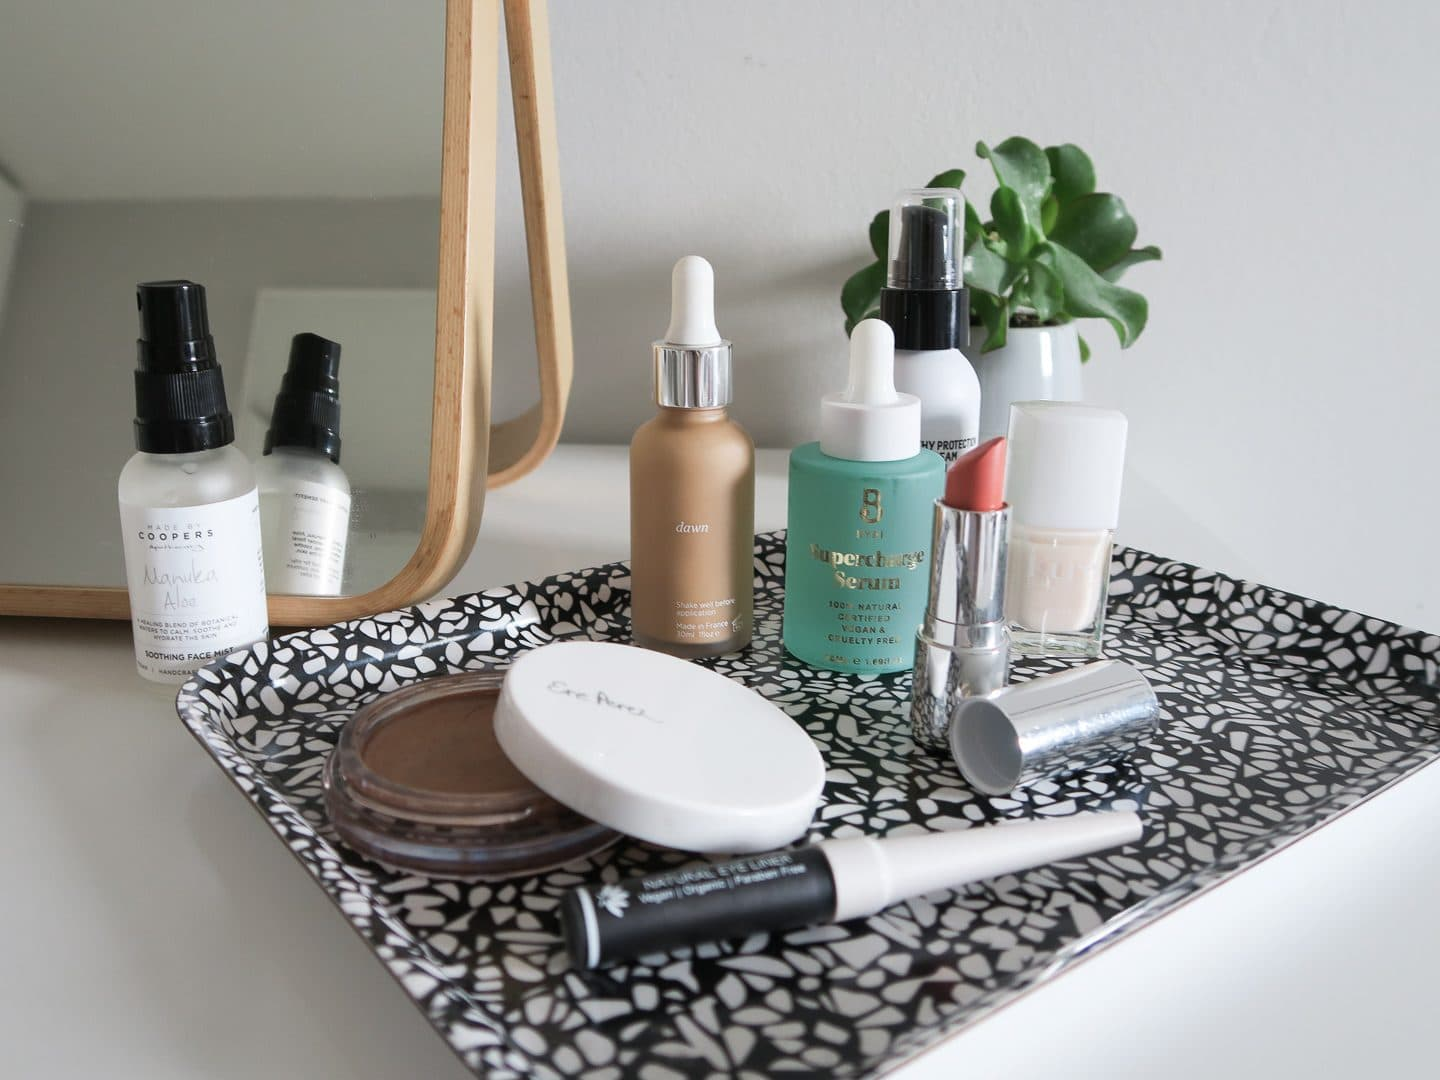 Clean beauty products on a tray